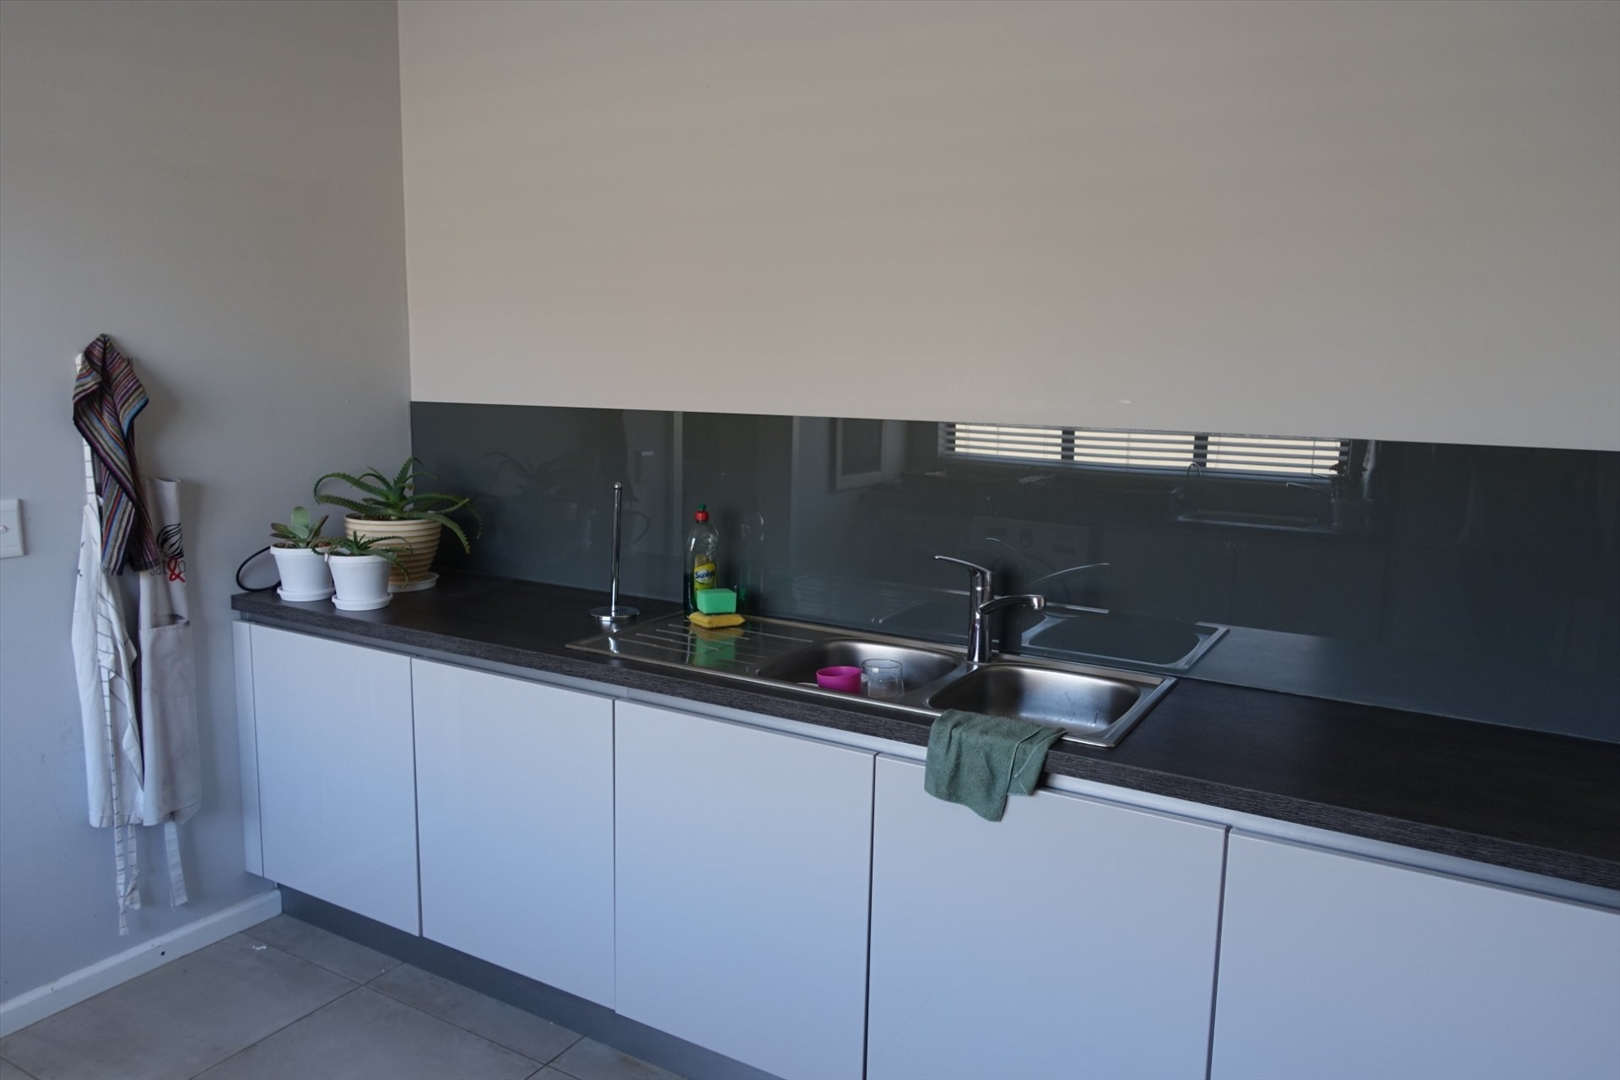 Scullery/laundry